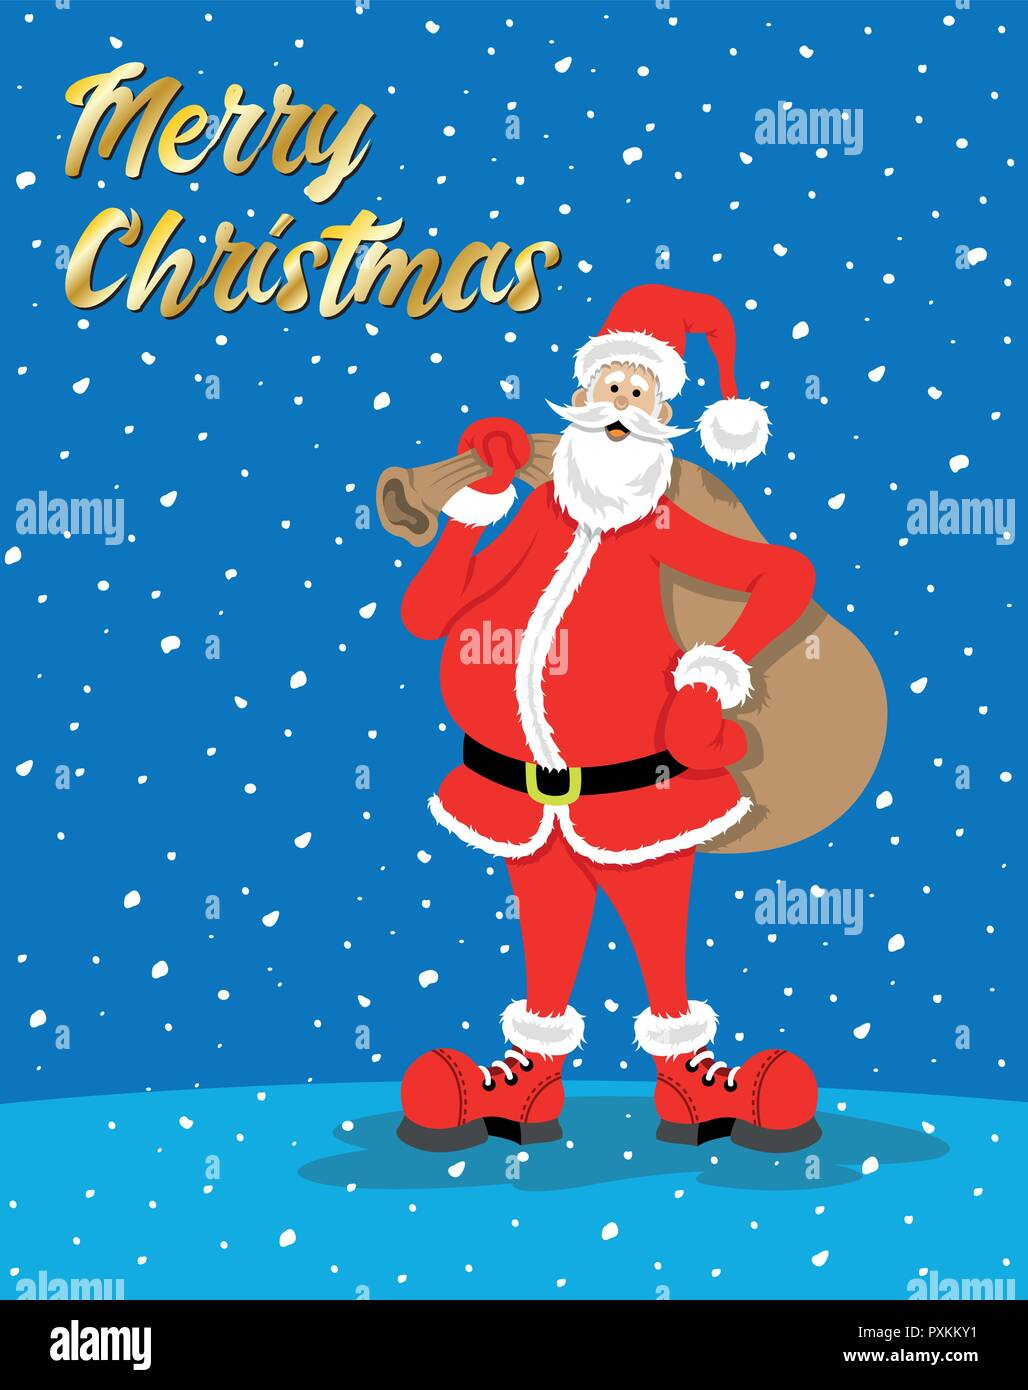 Christmas Festival Cartoon Images.Santa Claus Cartoon With Christmas Celebration Message While